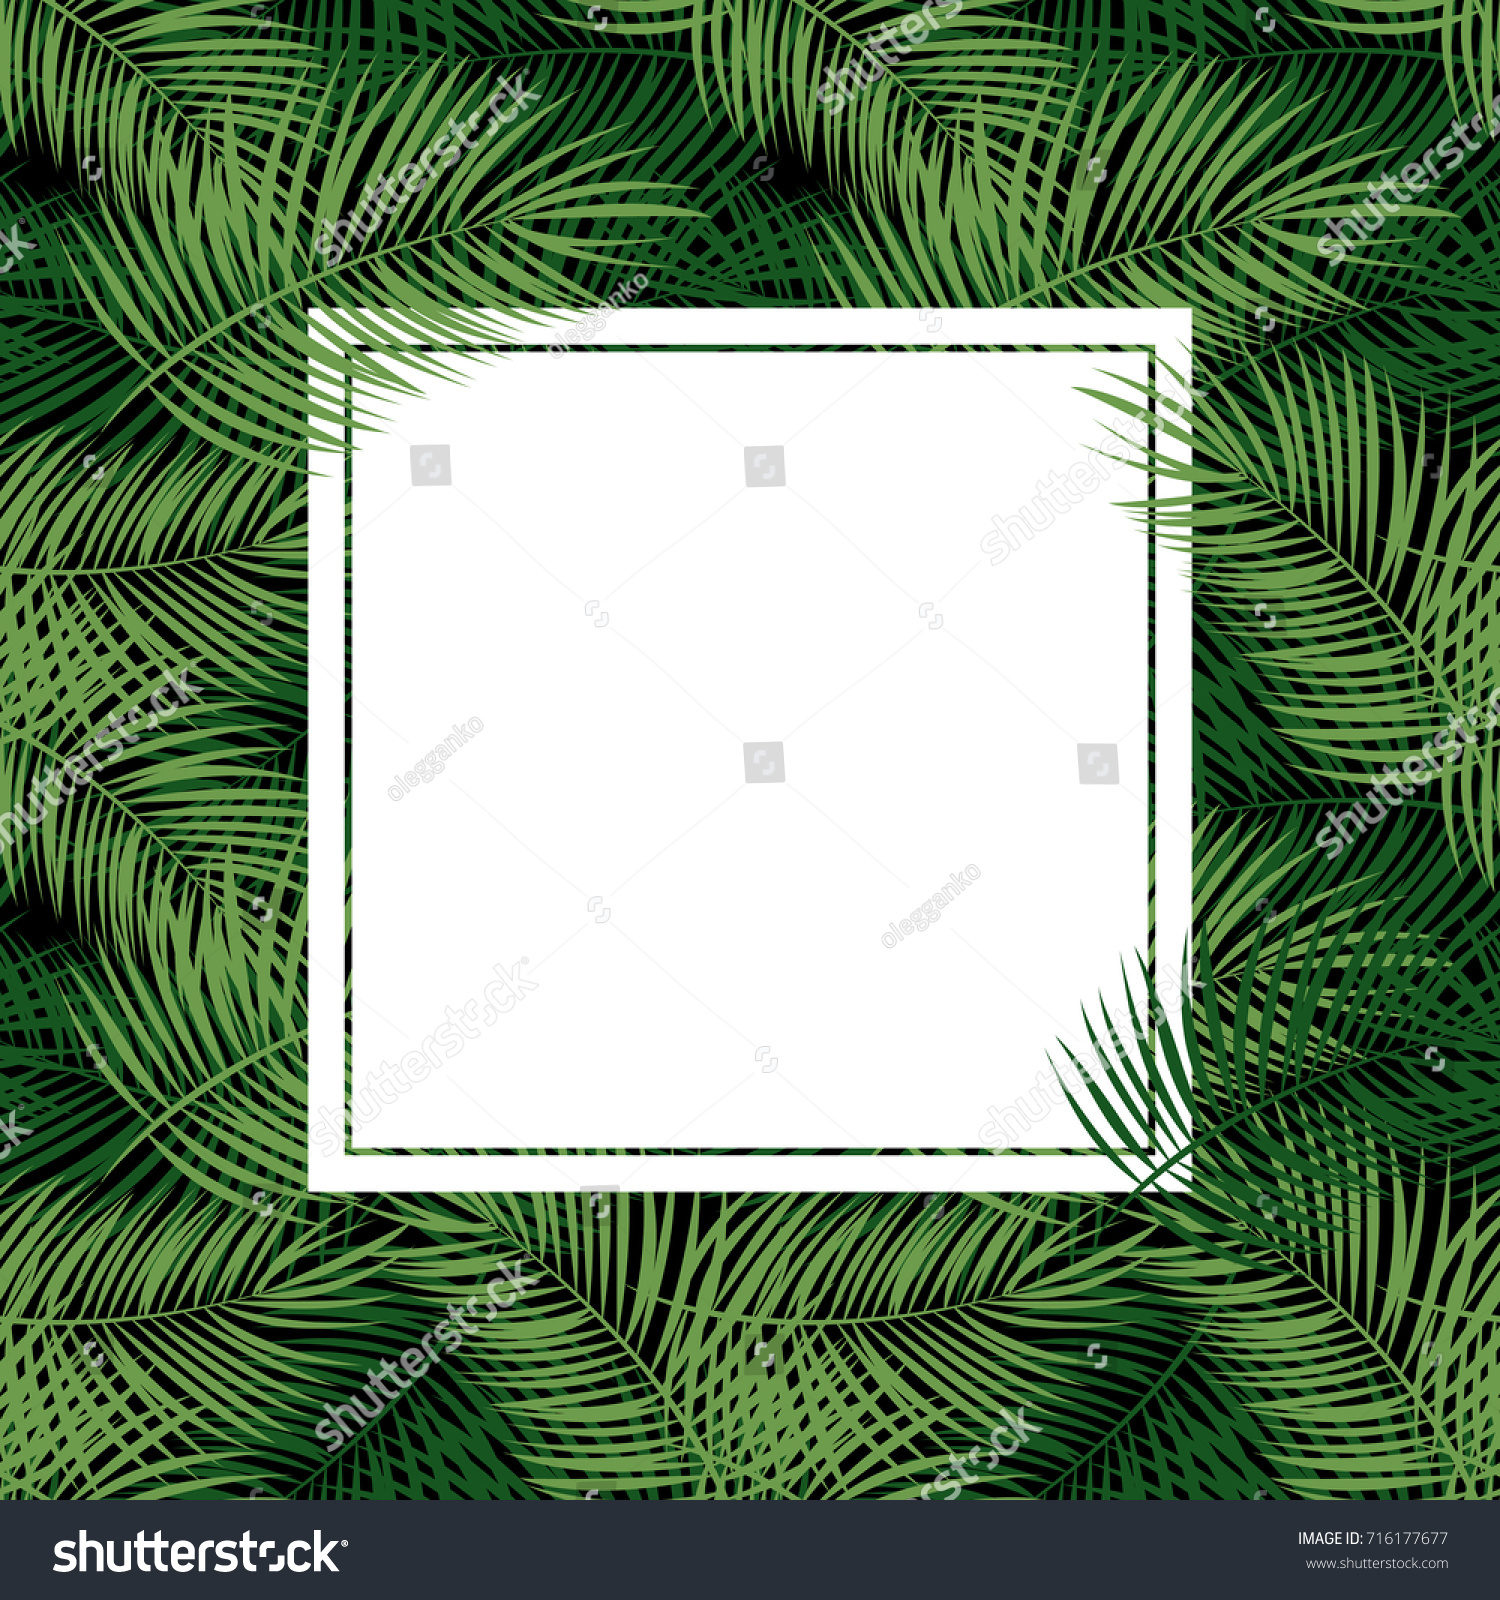 Palm Leaf Vector Background White Frame Stock Vector (Royalty Free ...